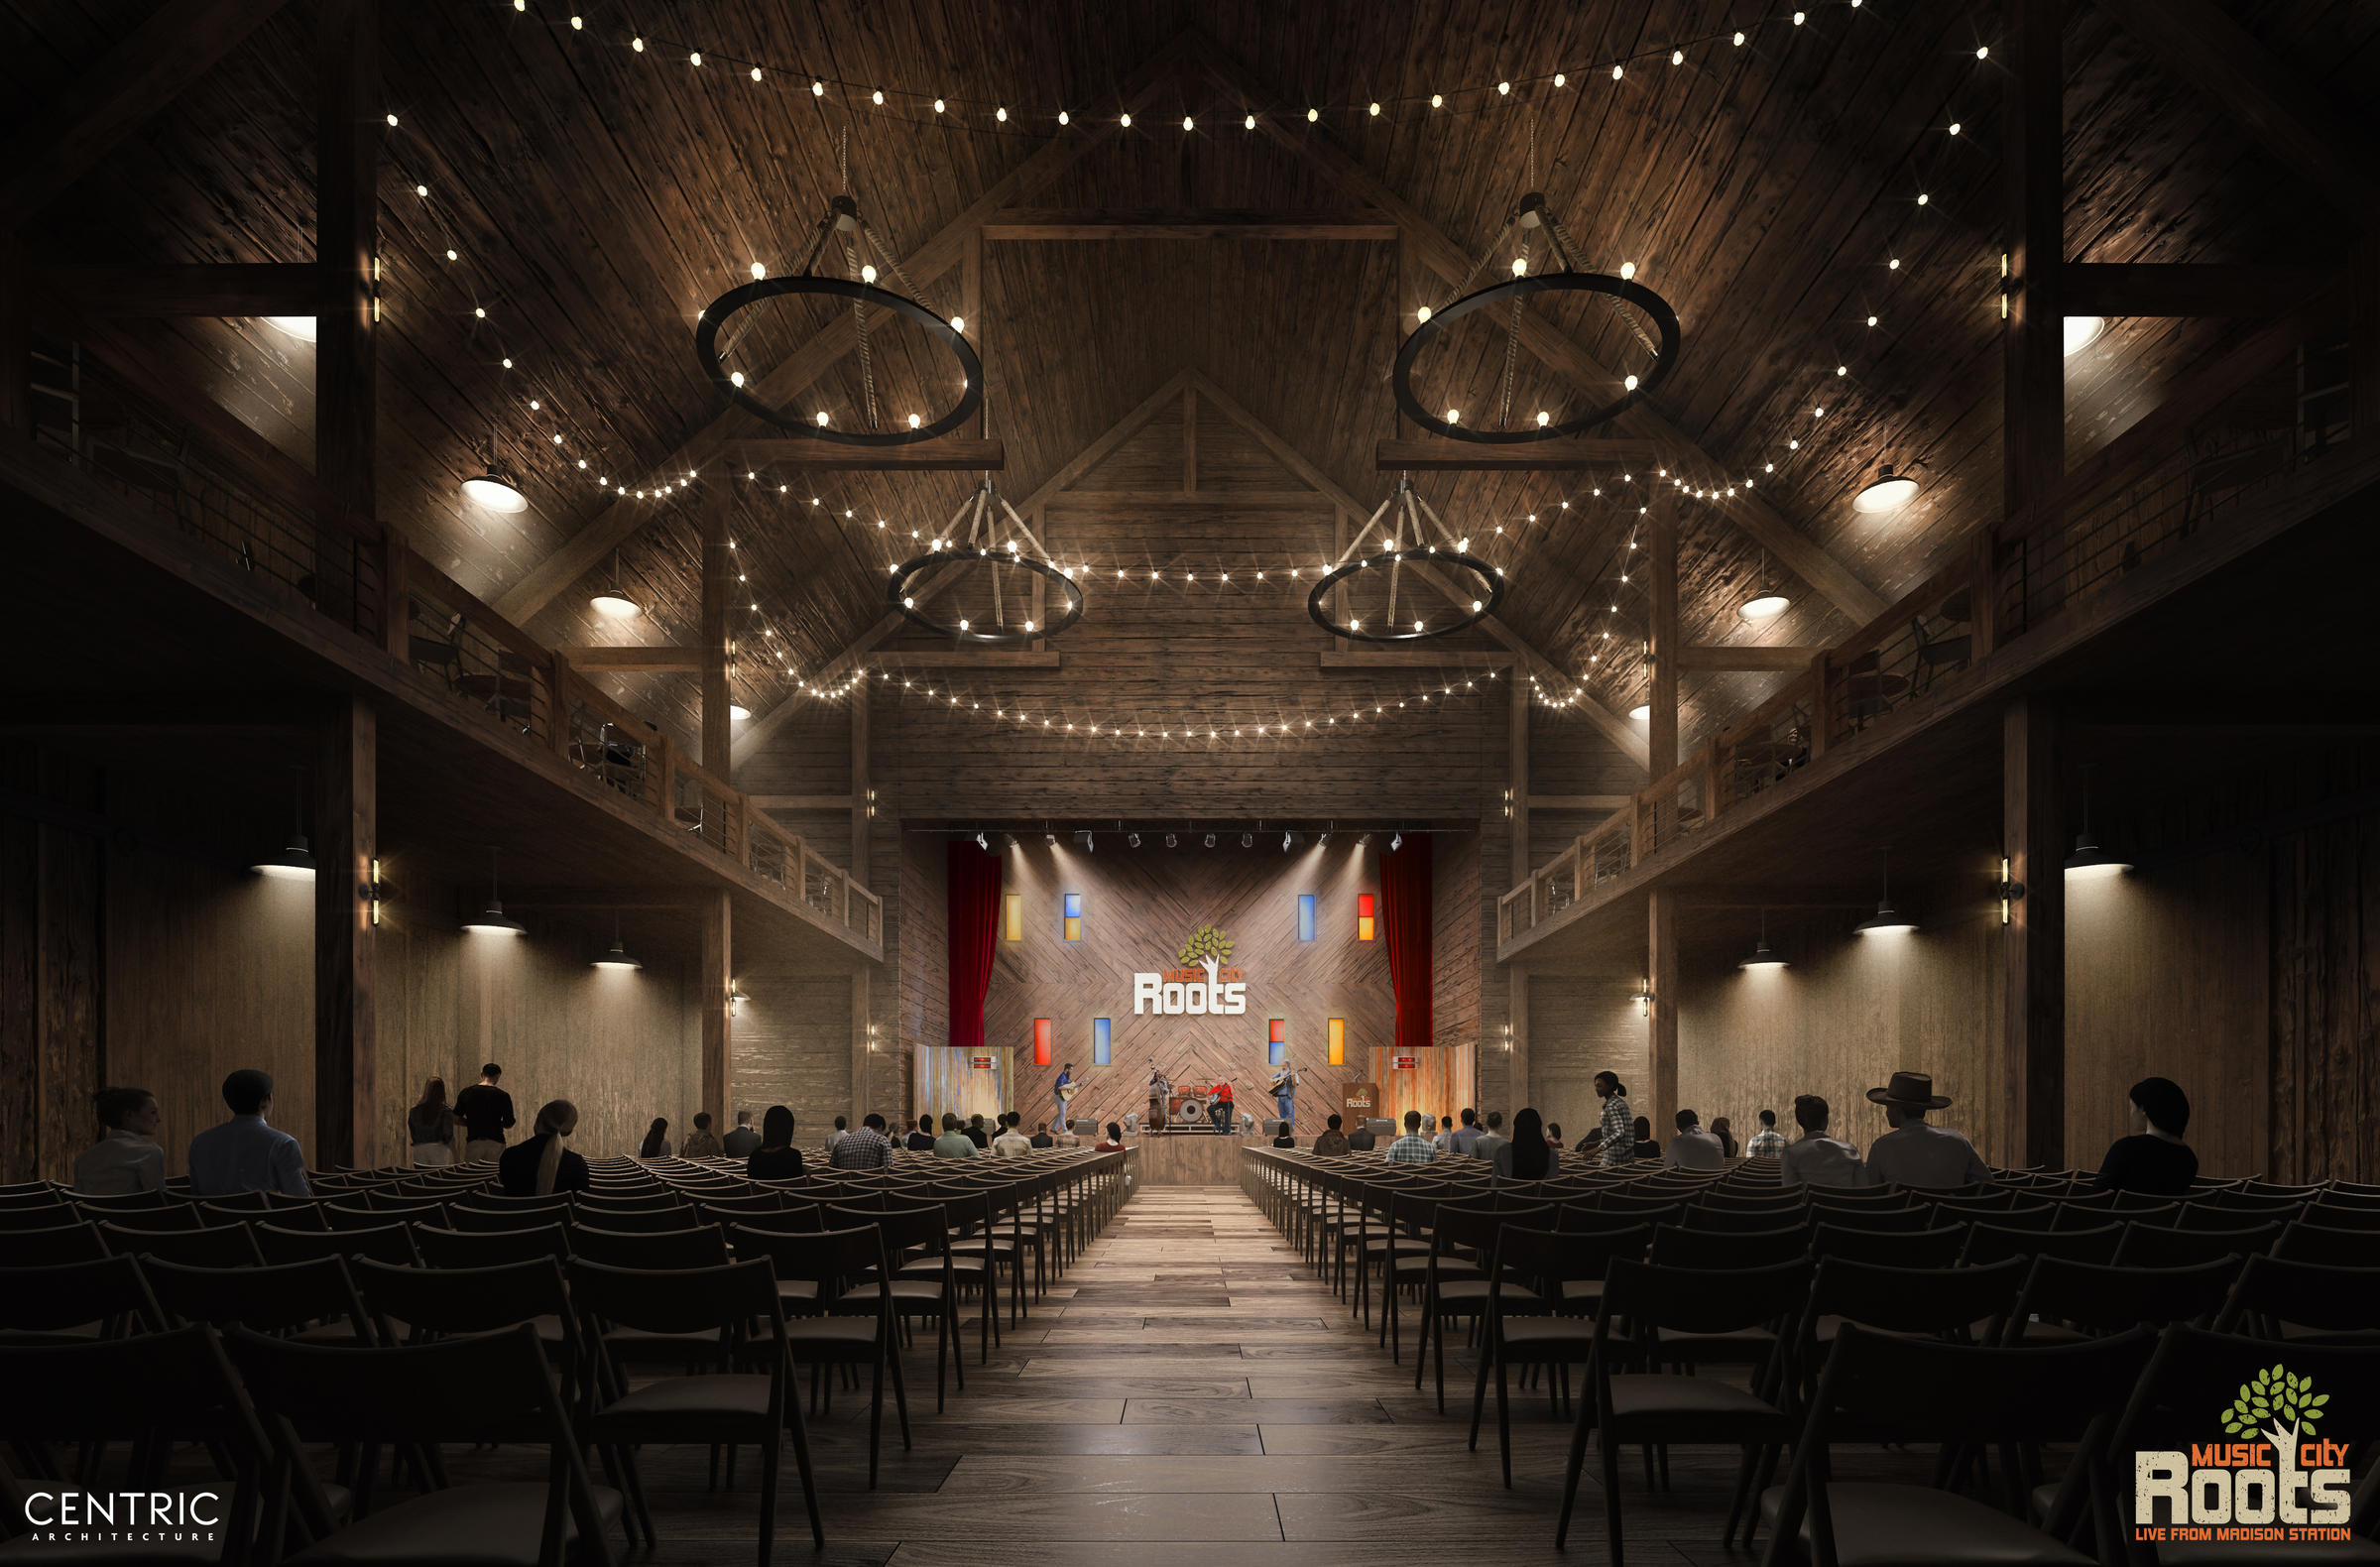 The inside of the new Music City Roots venue, The Roots Barn.